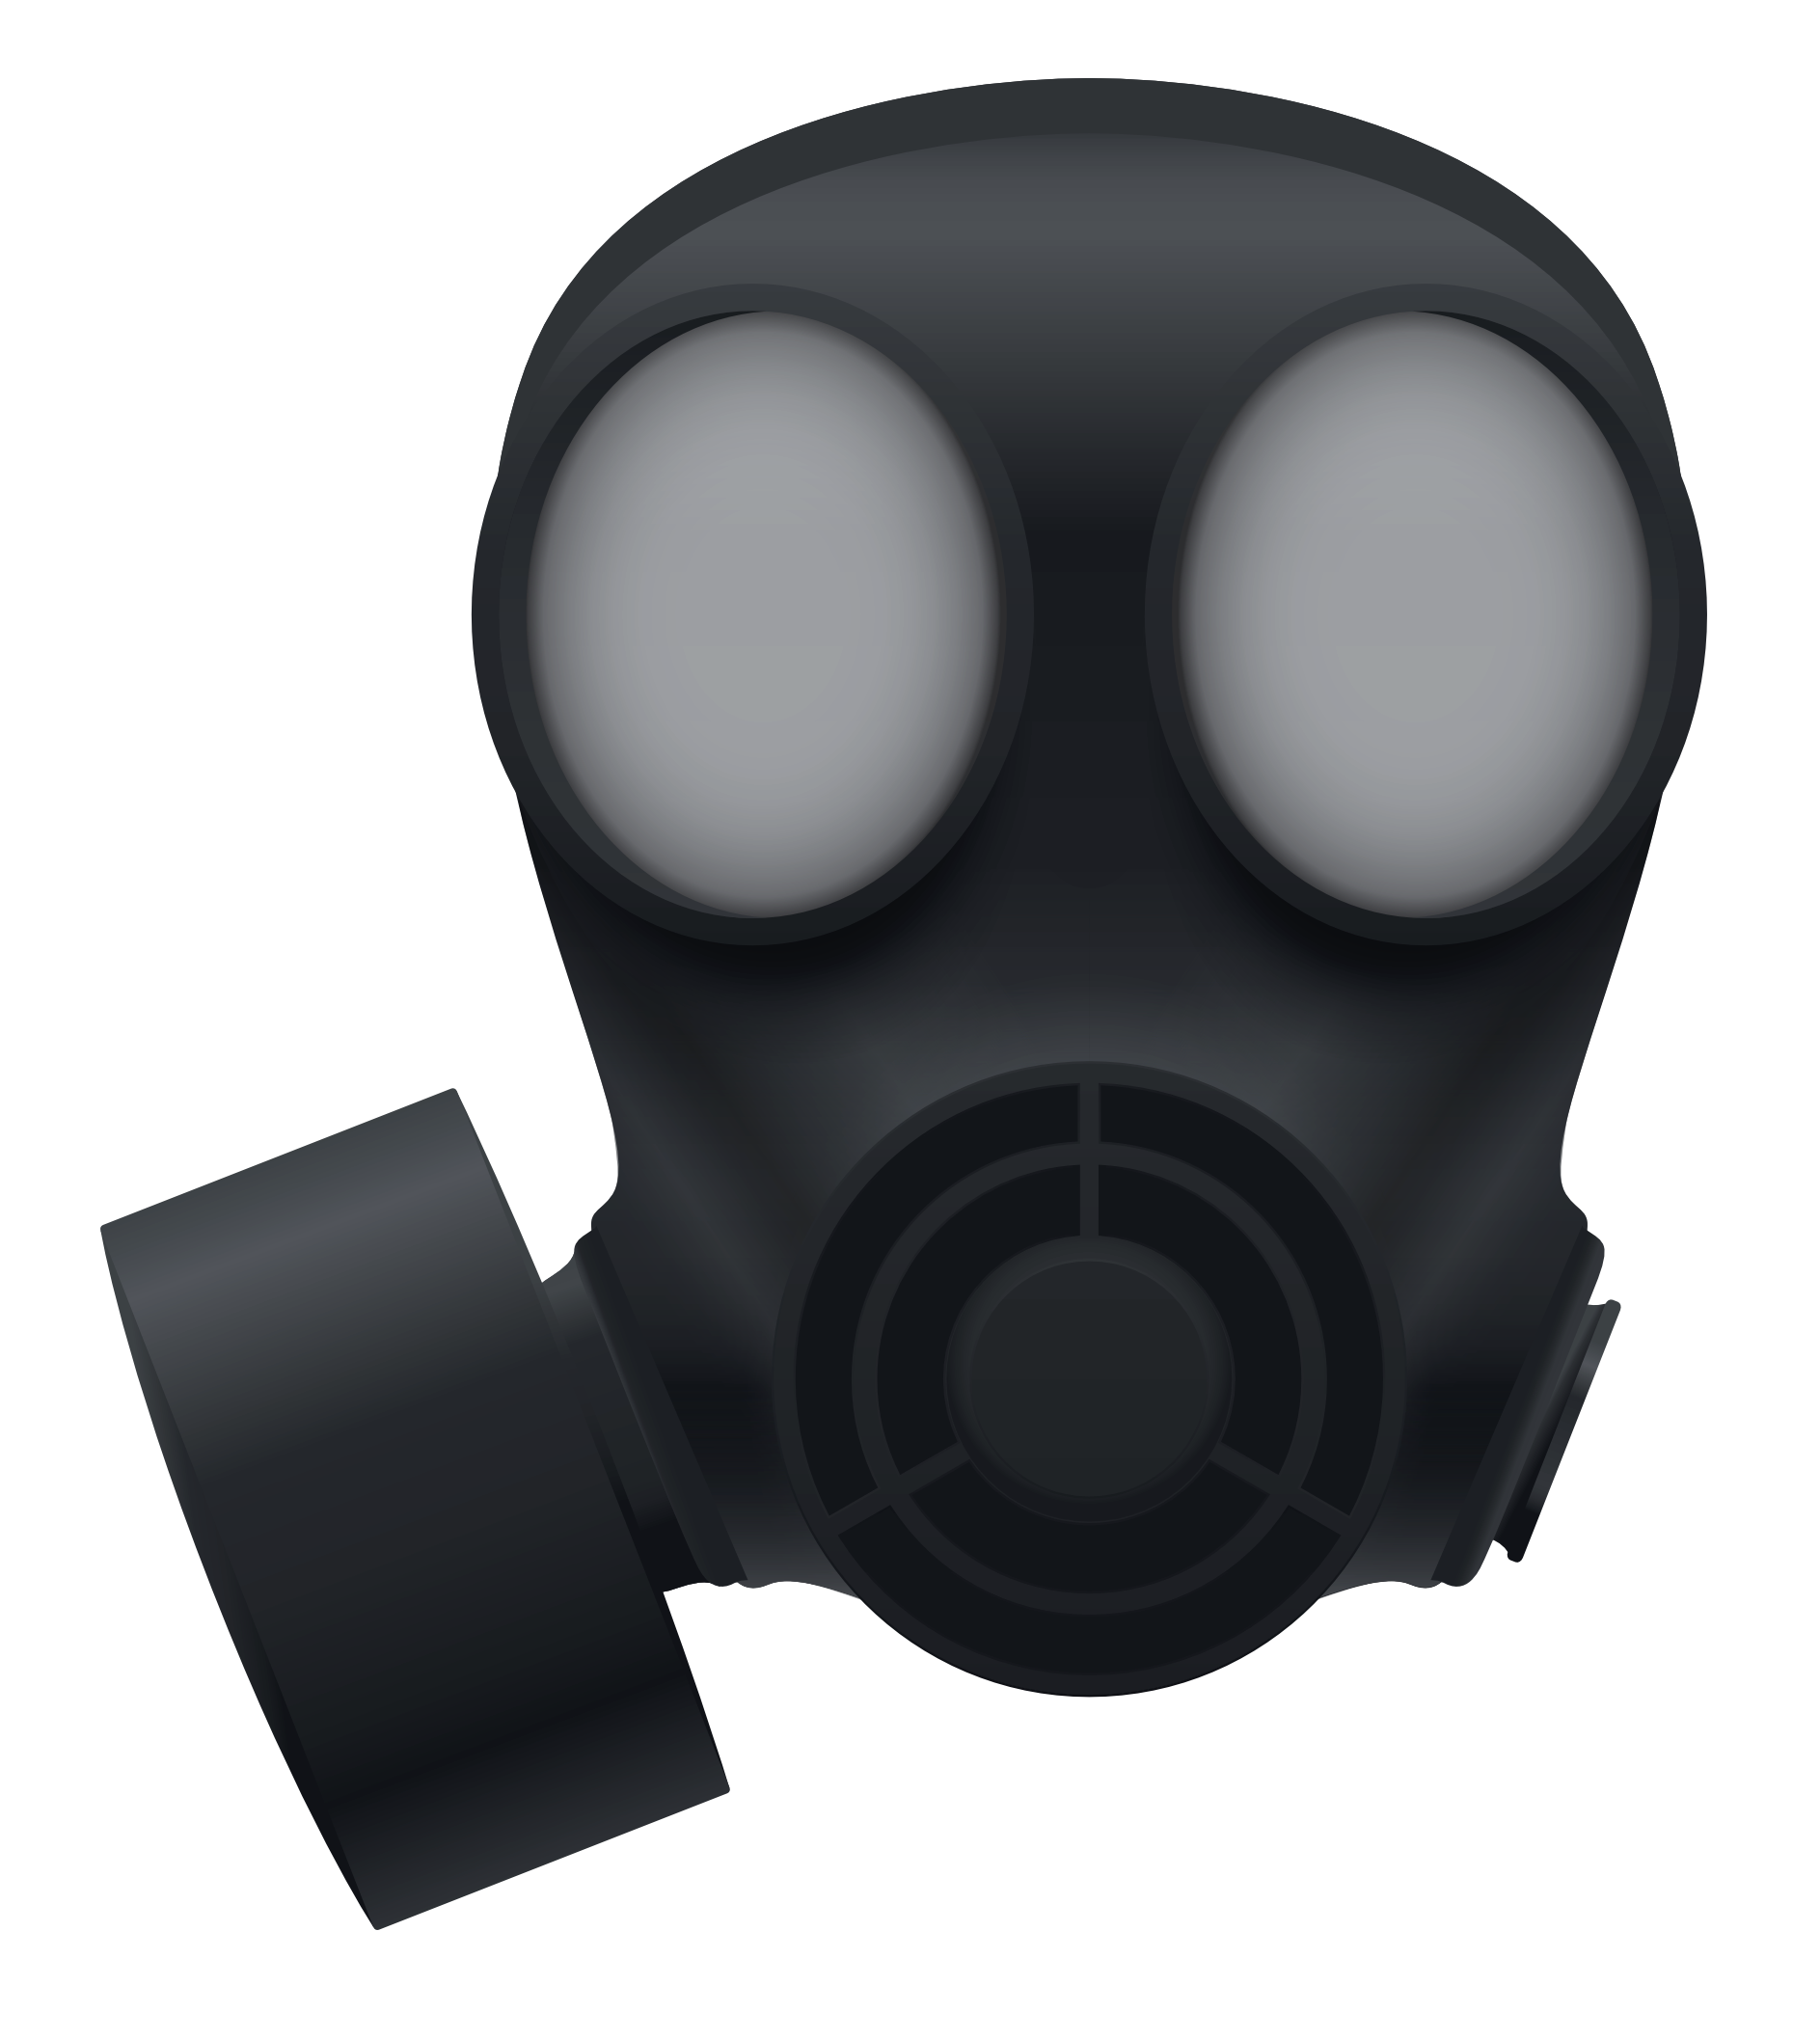 Mask png. Images transparent free download